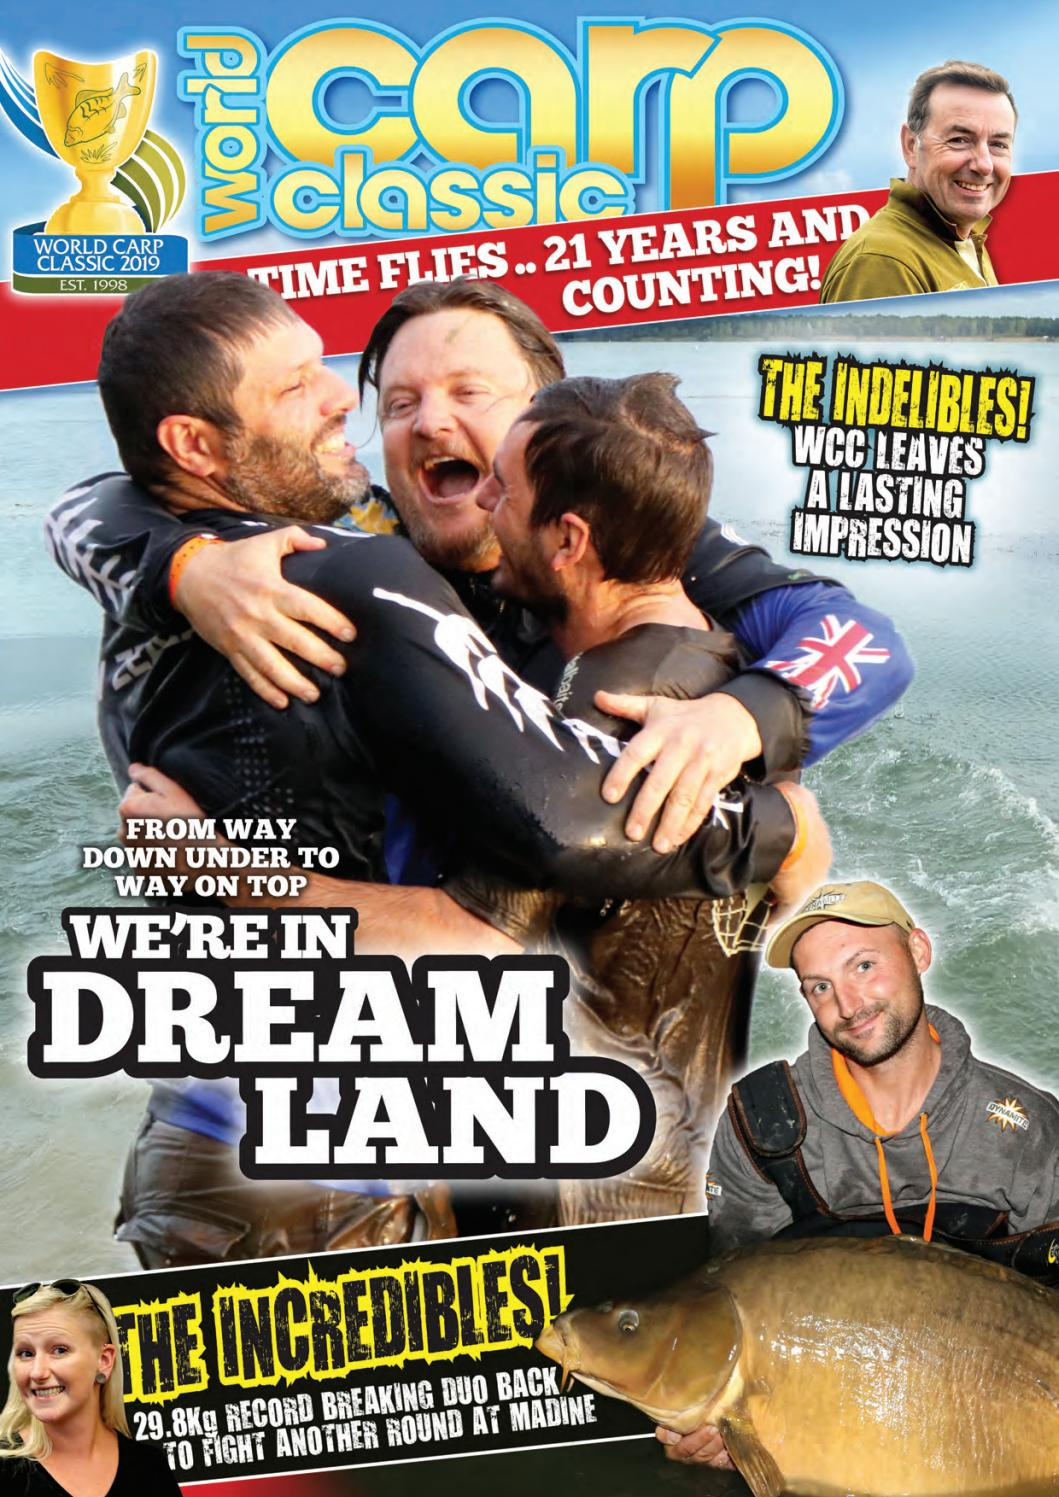 World Carp Classic 2019 ficial Magazine by Angling Spirit